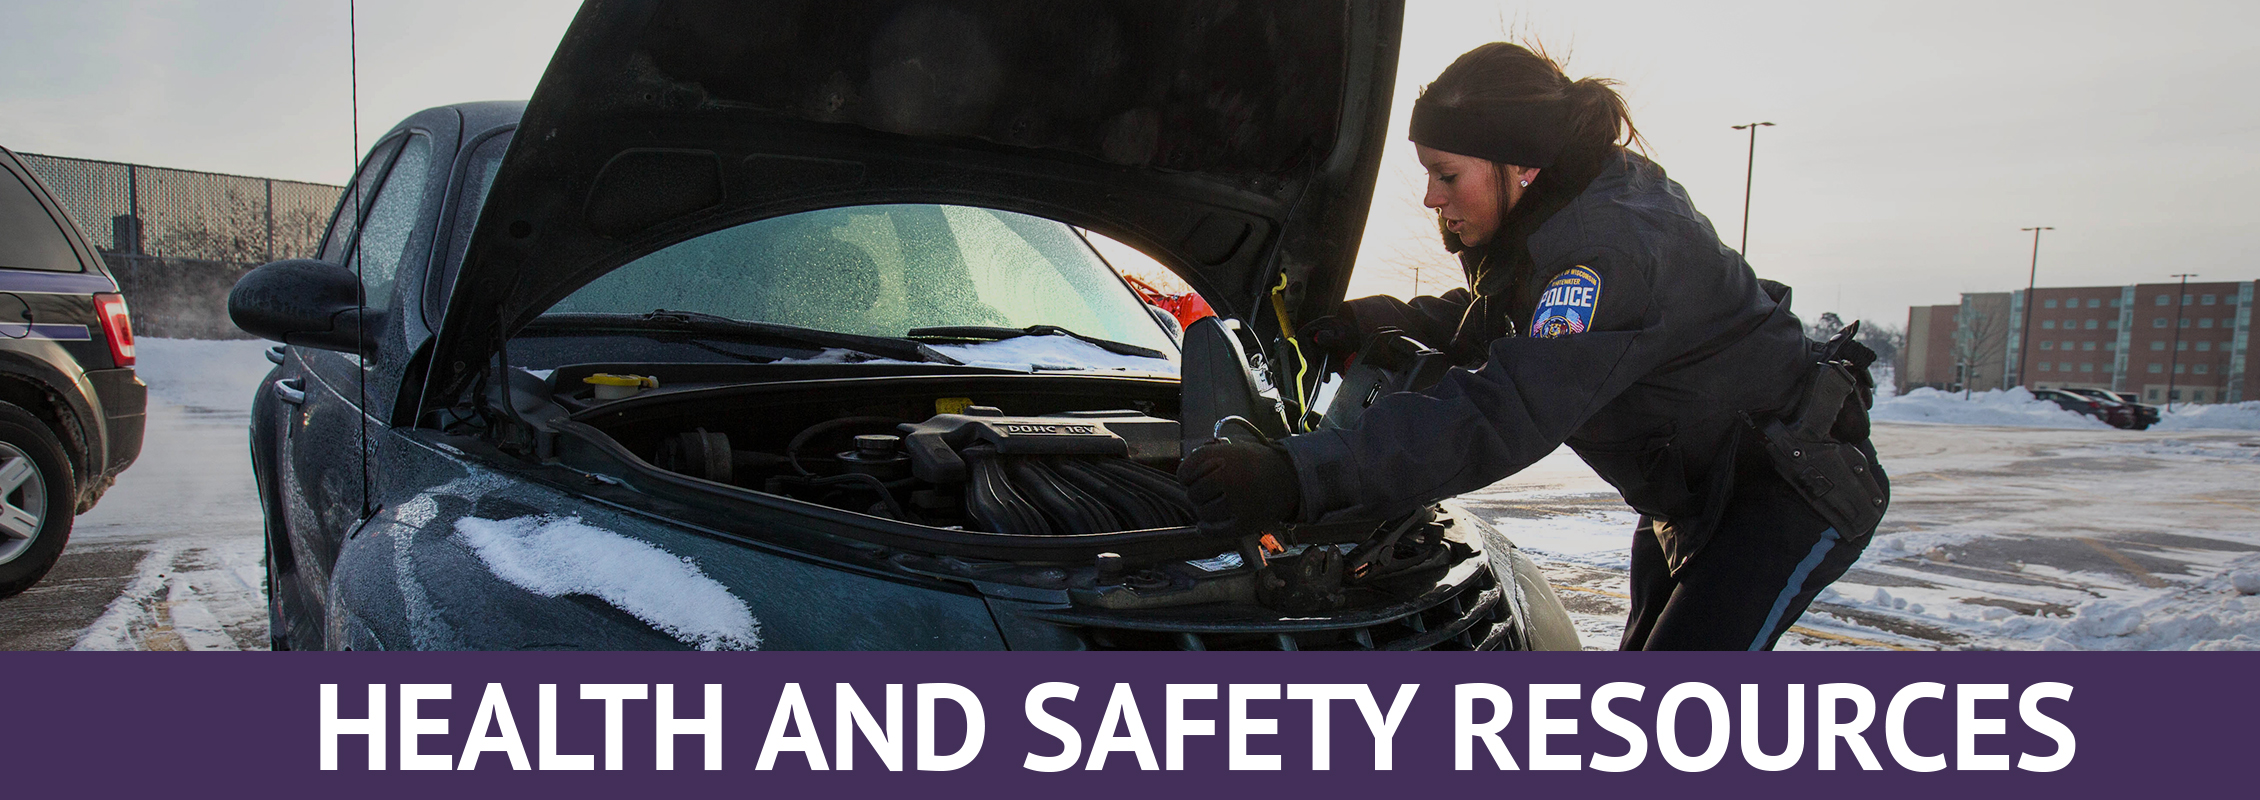 Health and Safety Resources: Police officer checking a car's engine in a snowy parking lot